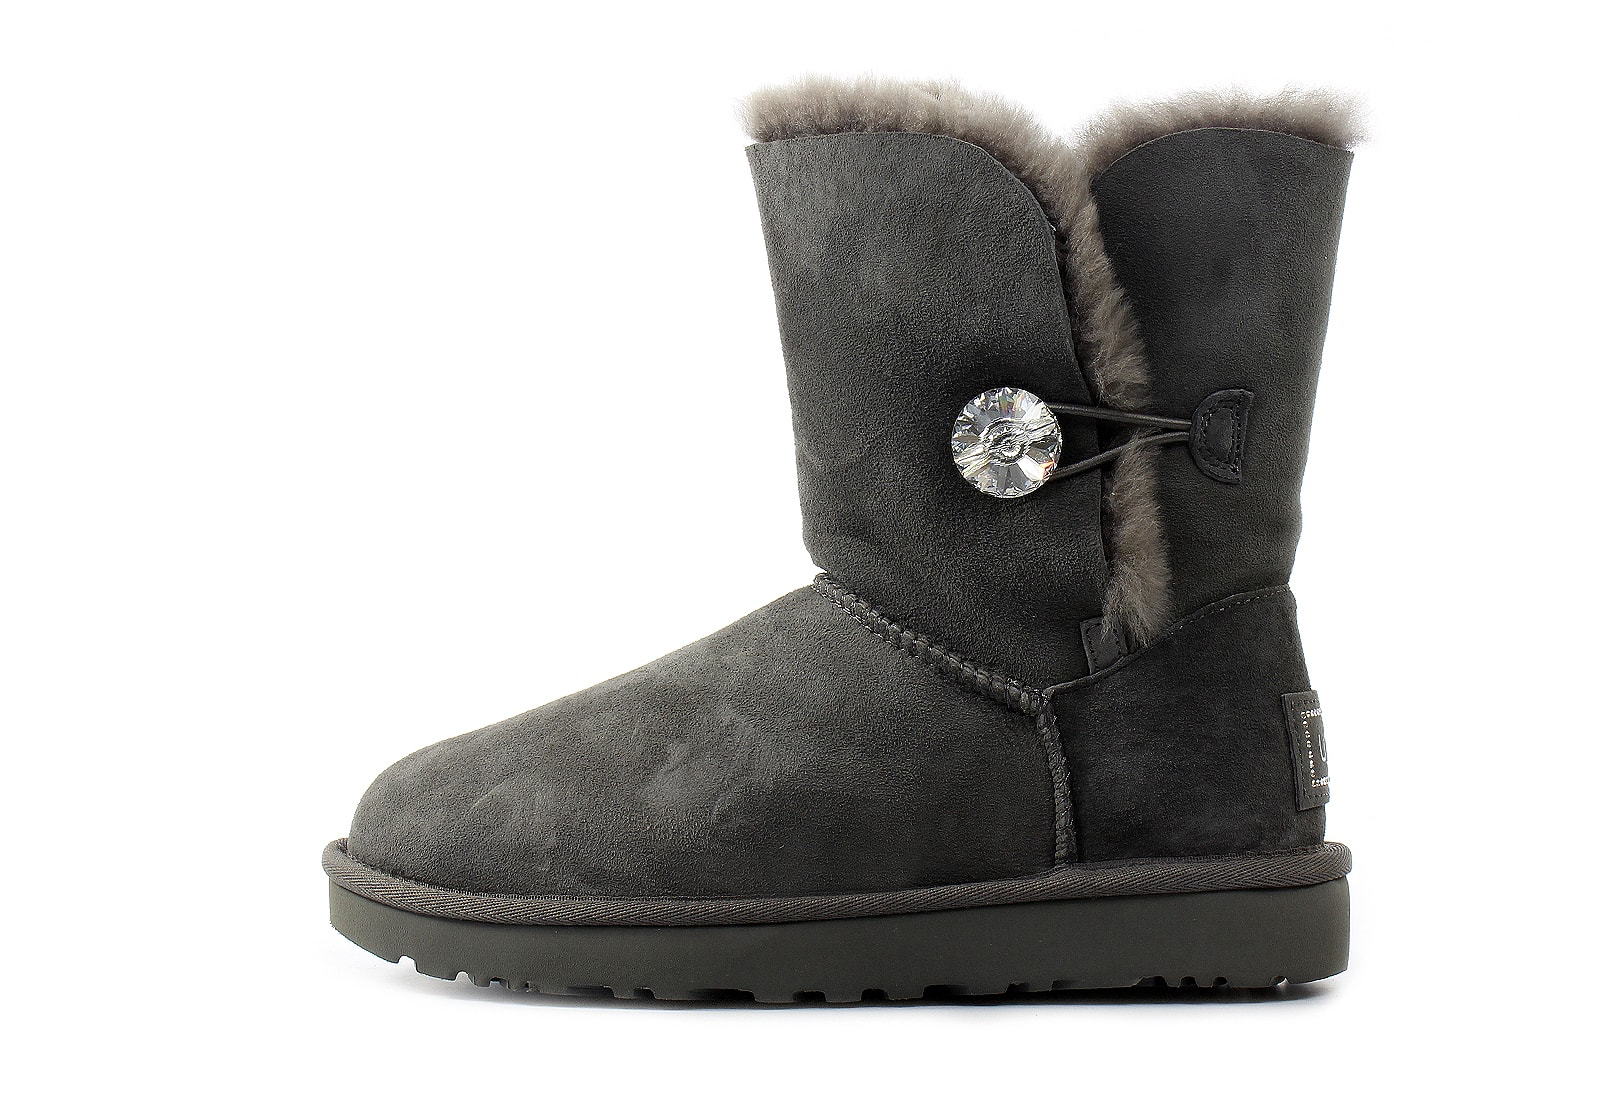 Ugg Boots Bailey Button Bling 1016553 Grey Online